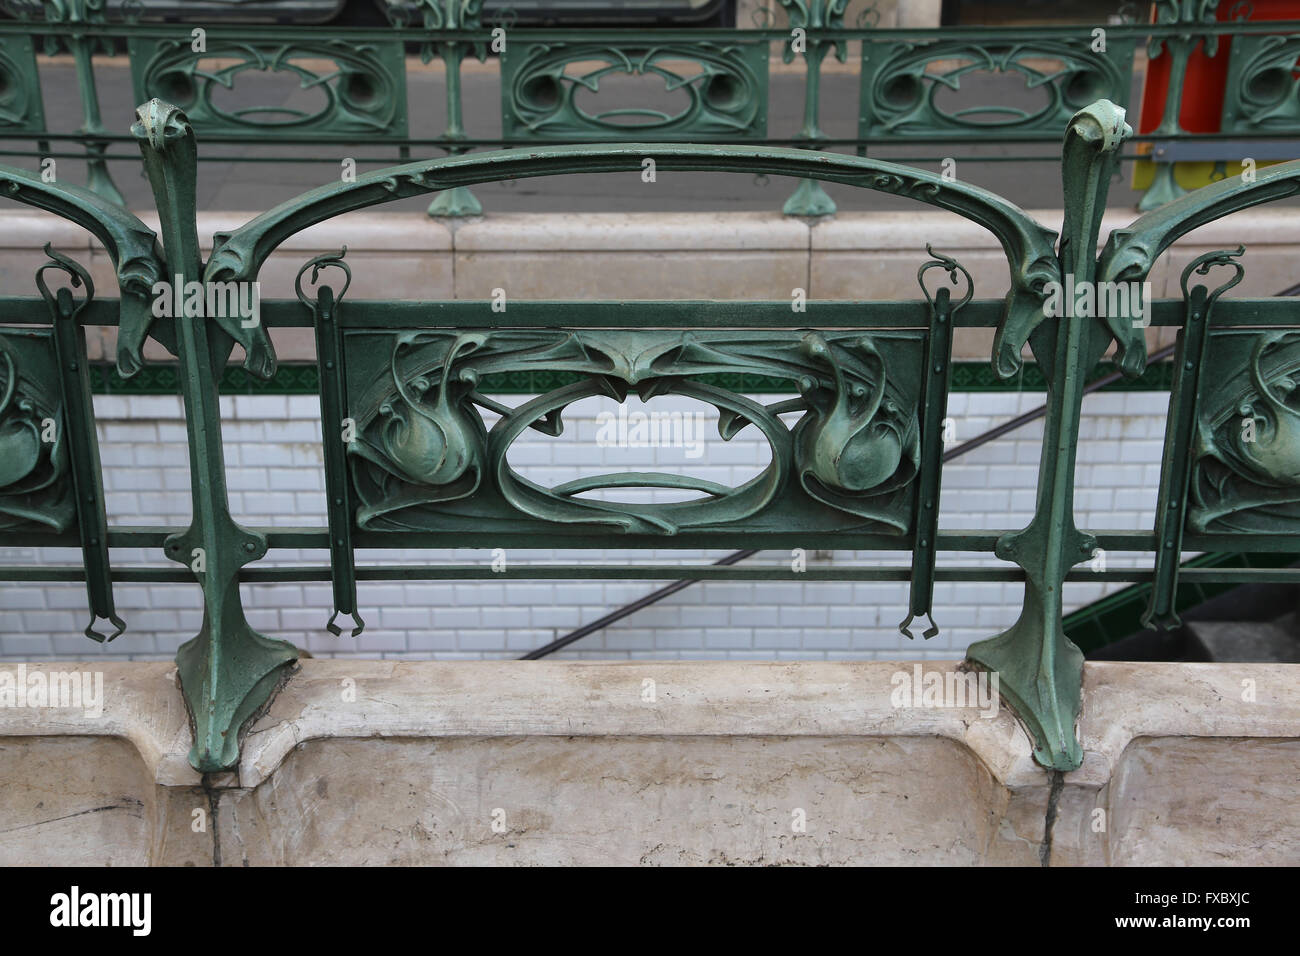 France. Paris. Entrance. Metro station. Detail. Iron. Art Nouveau. - Stock Image